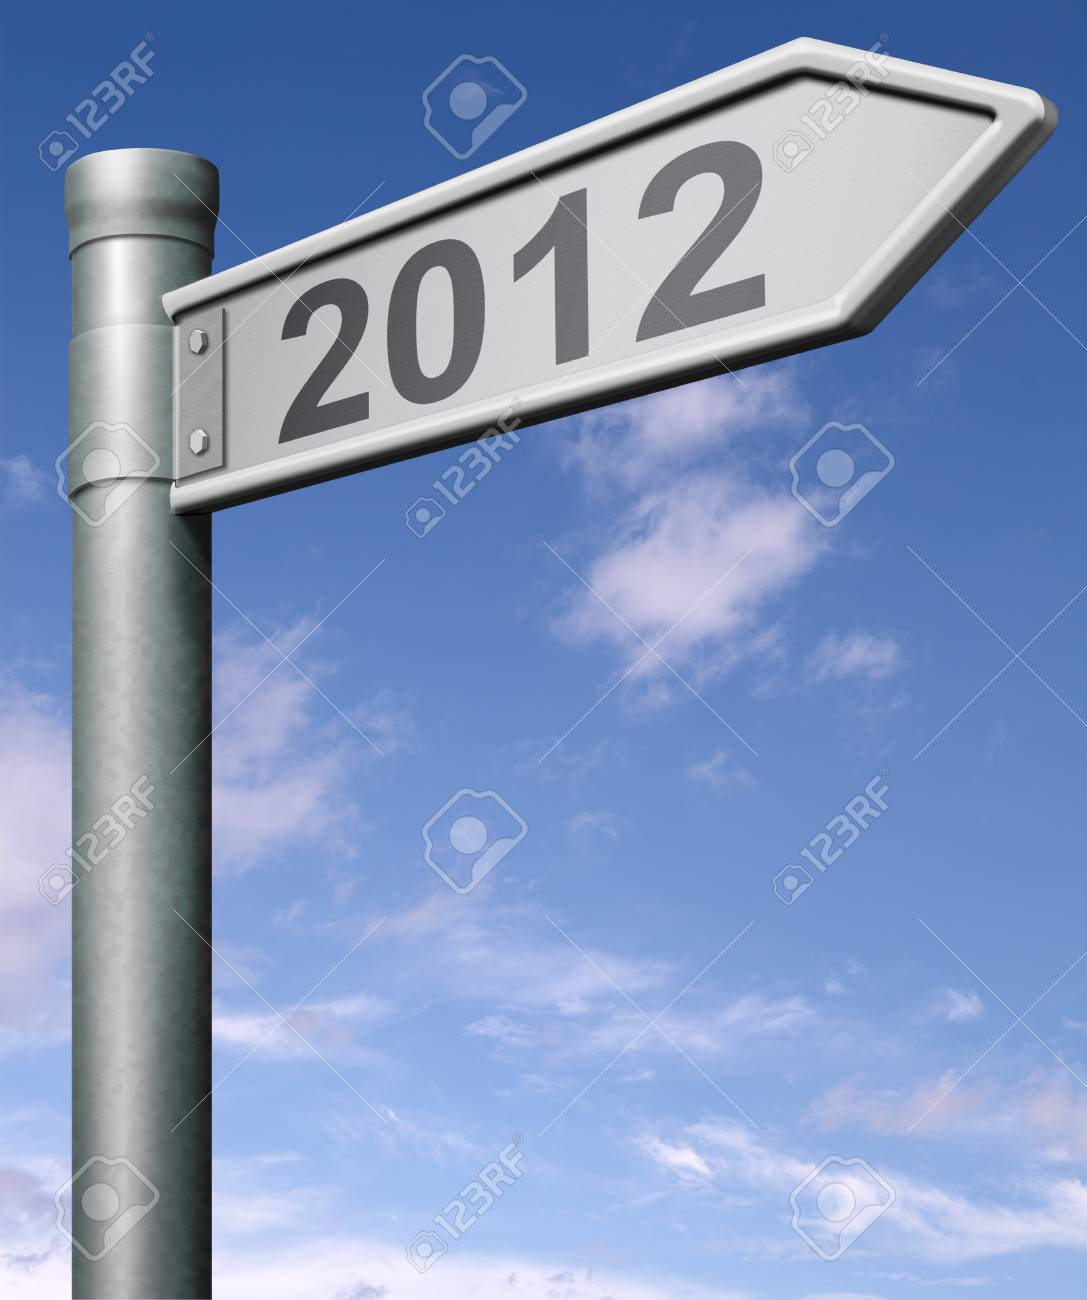 2012 next year road sign arrow pointing towards a happy new year button, arrow Stock Photo - 9497593